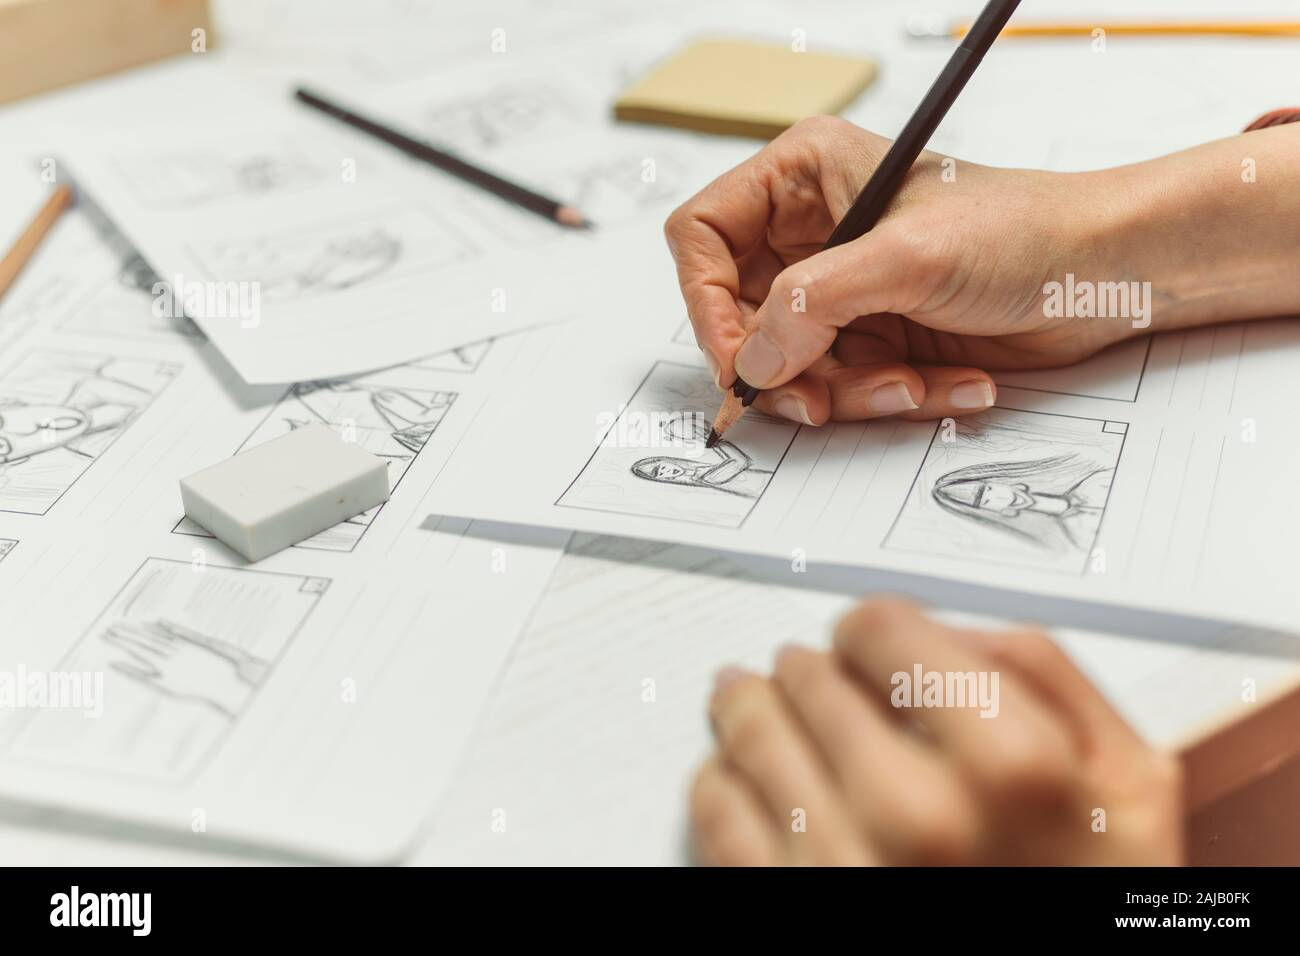 Woman's hand draws a storyboard for a film or cartoon. Stock Photo